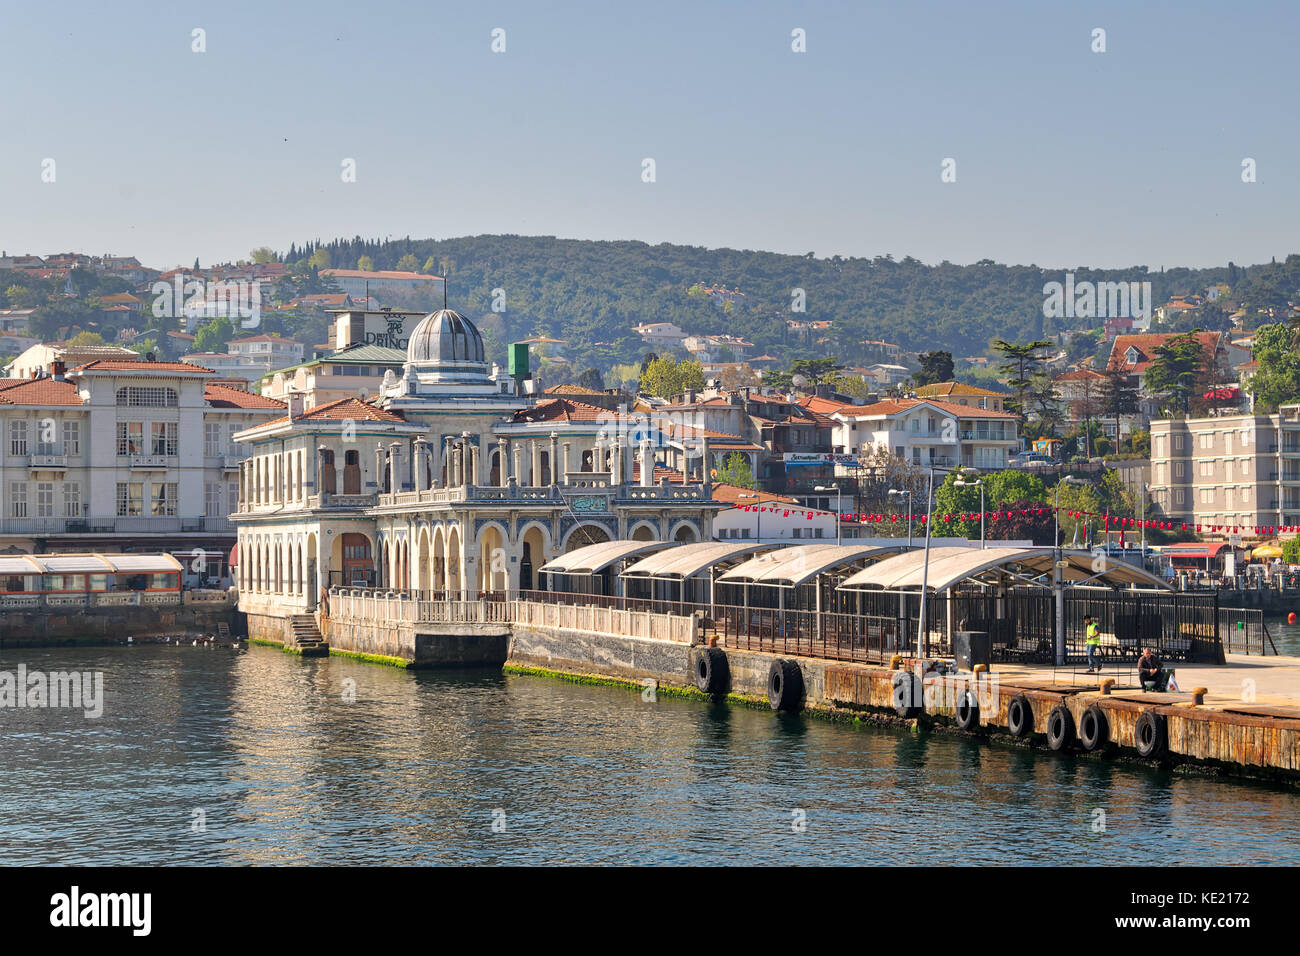 Istanbul, Turkey - April 27, 2017: Buyukada (Princess Island) Ferry Terminal with passengers riding a ferry and - Stock Photo